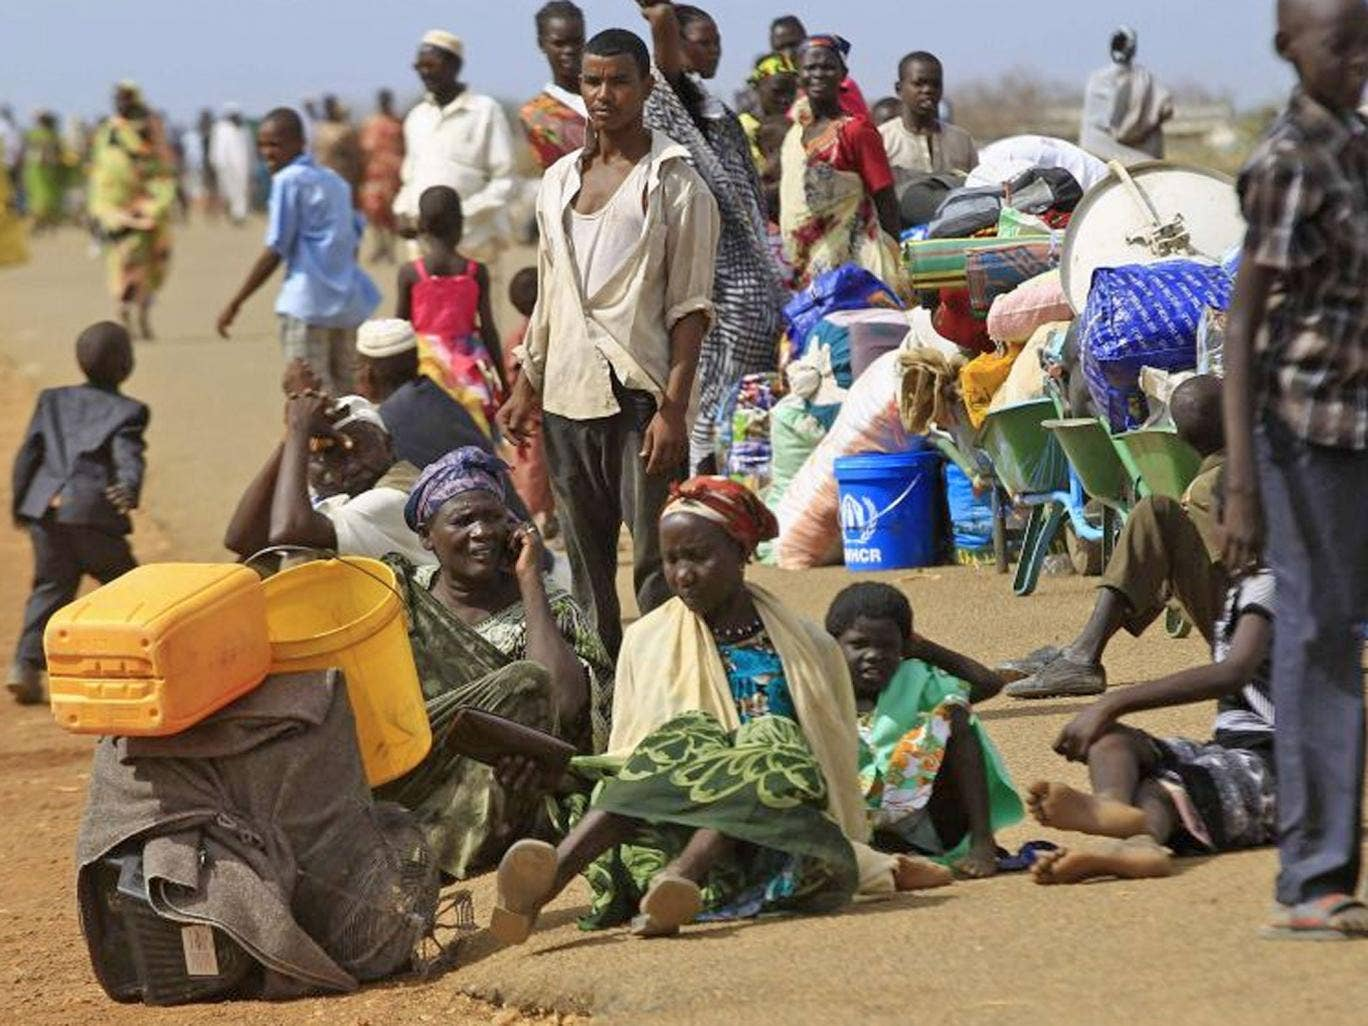 South Sudanese fleeing an attack on the South Sudanese town of Rank, wait to register after arriving at a border gate in Joda, along the Sudanese border